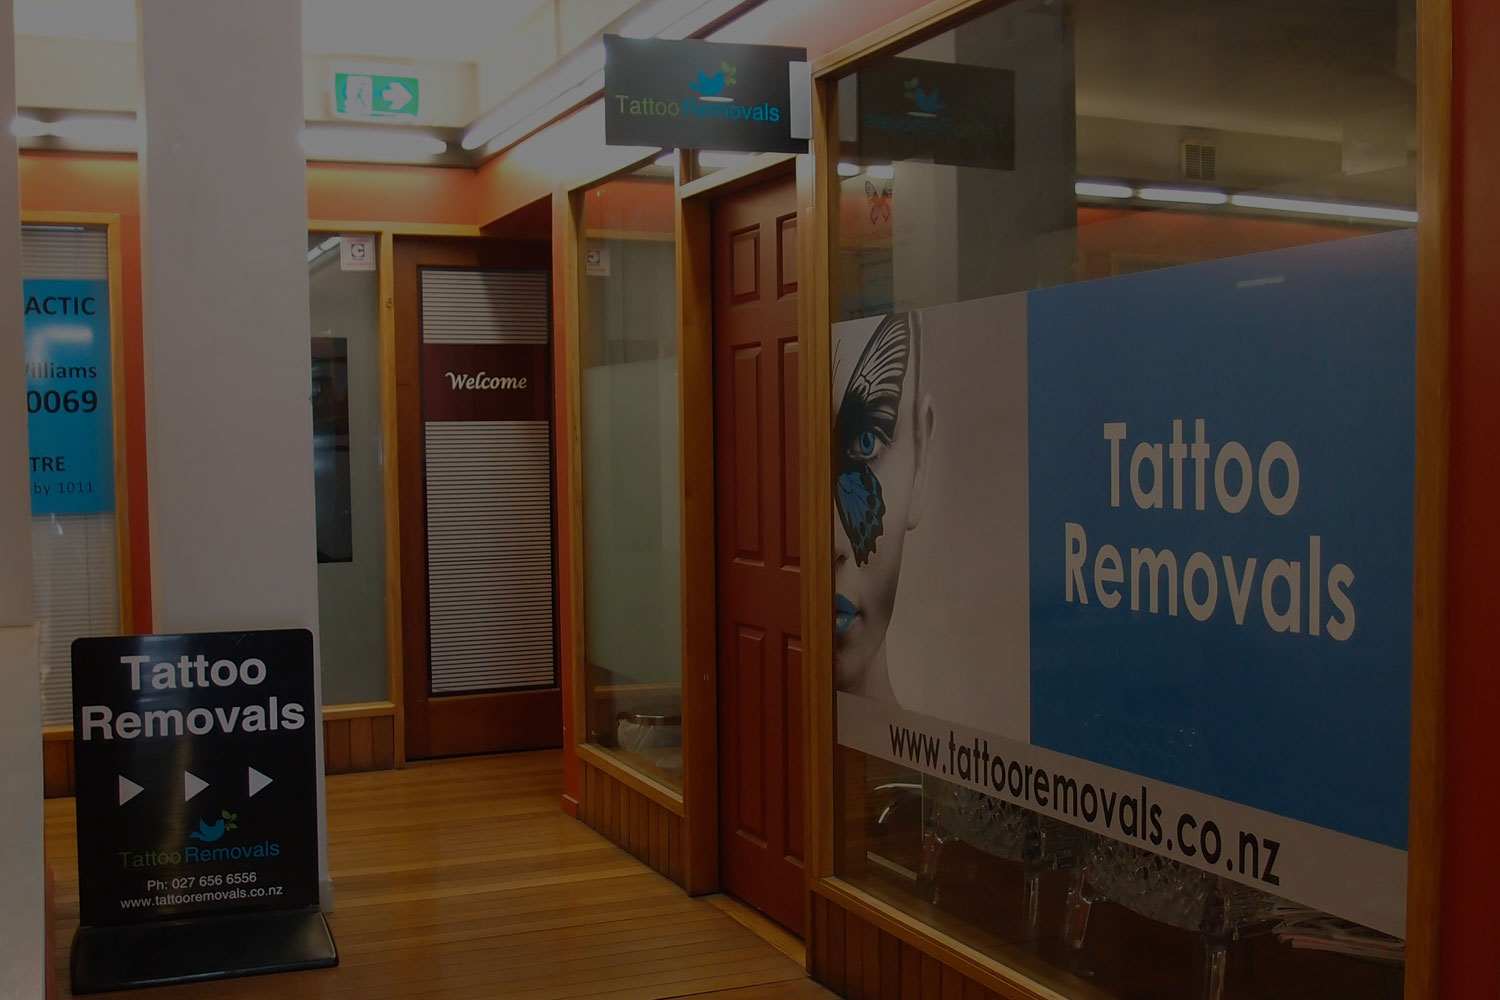 Tattoo Removals Auckland